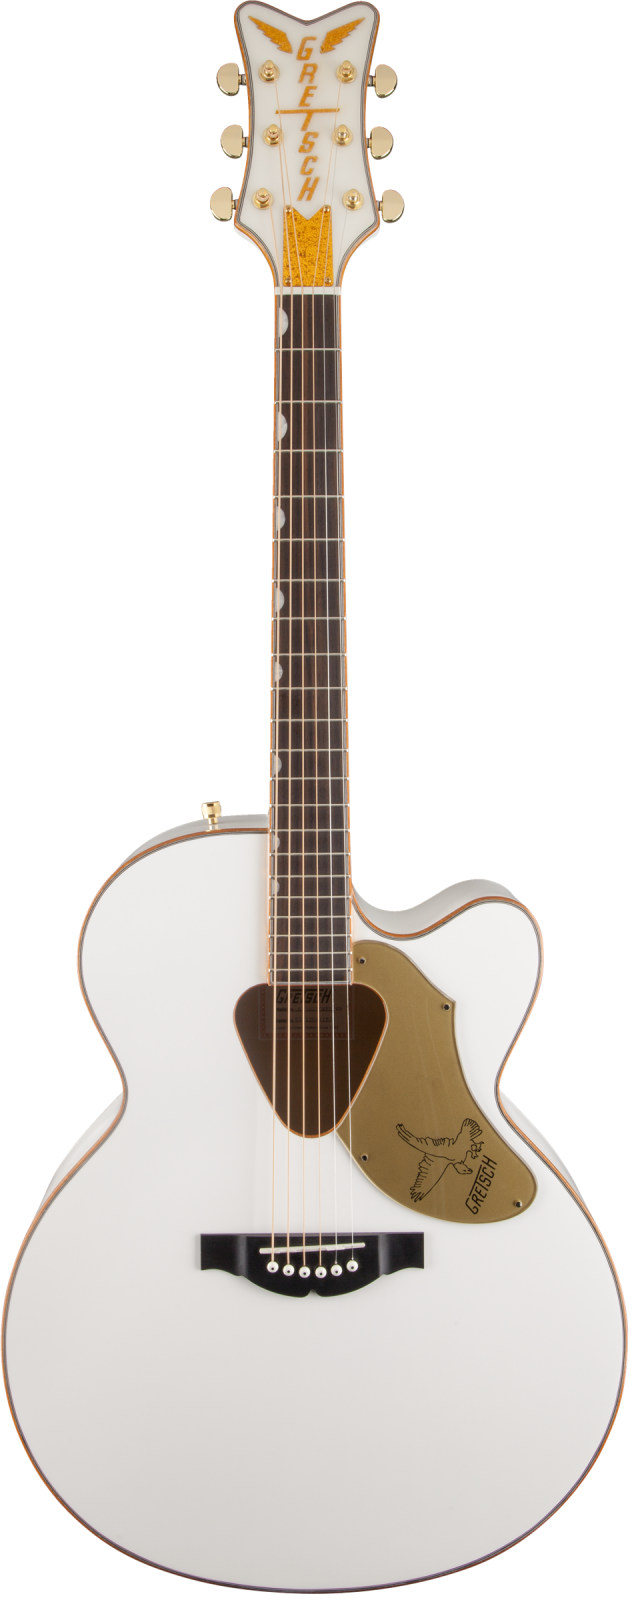 Gretsch G5022CWFE Rancher Falcon - Rosewood Fingerboard, White